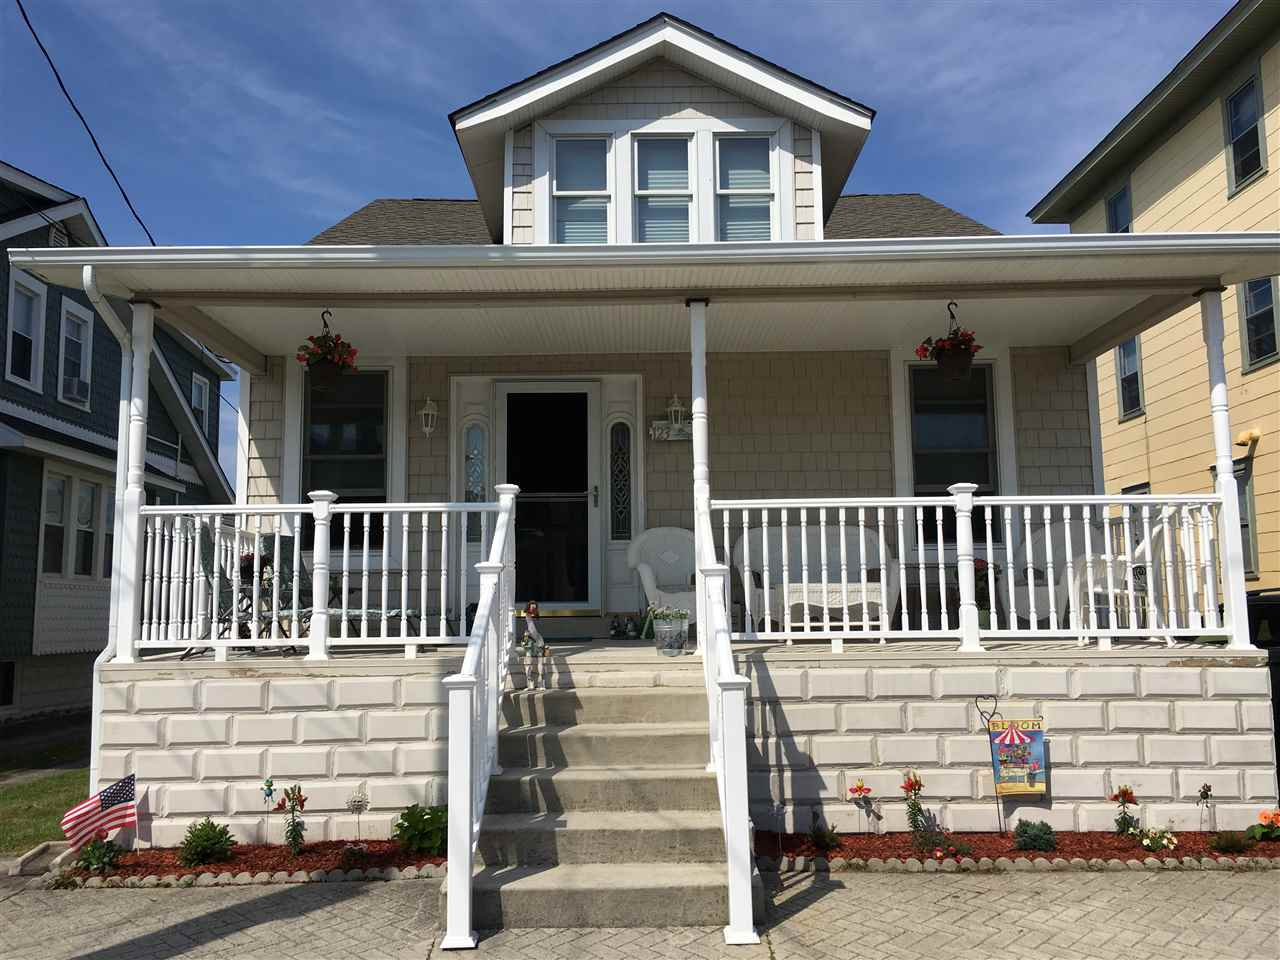 Residential for Sale at 123 E. Hildreth Avenue 123 E. Hildreth Avenue Wildwood, New Jersey 08260 United States